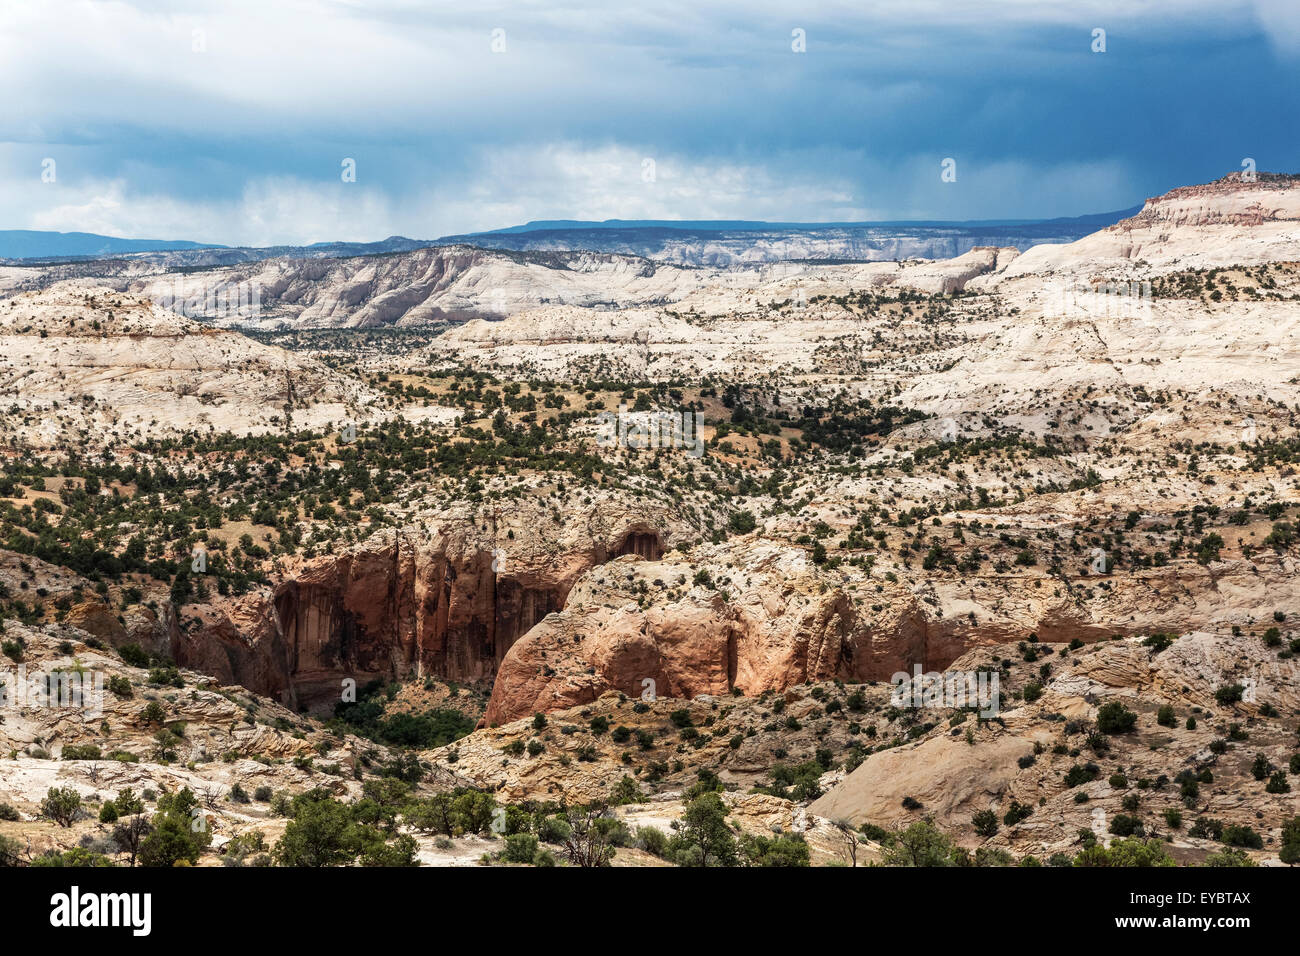 Grand Staircase-Escalante National Monument, Utah - Stock Image